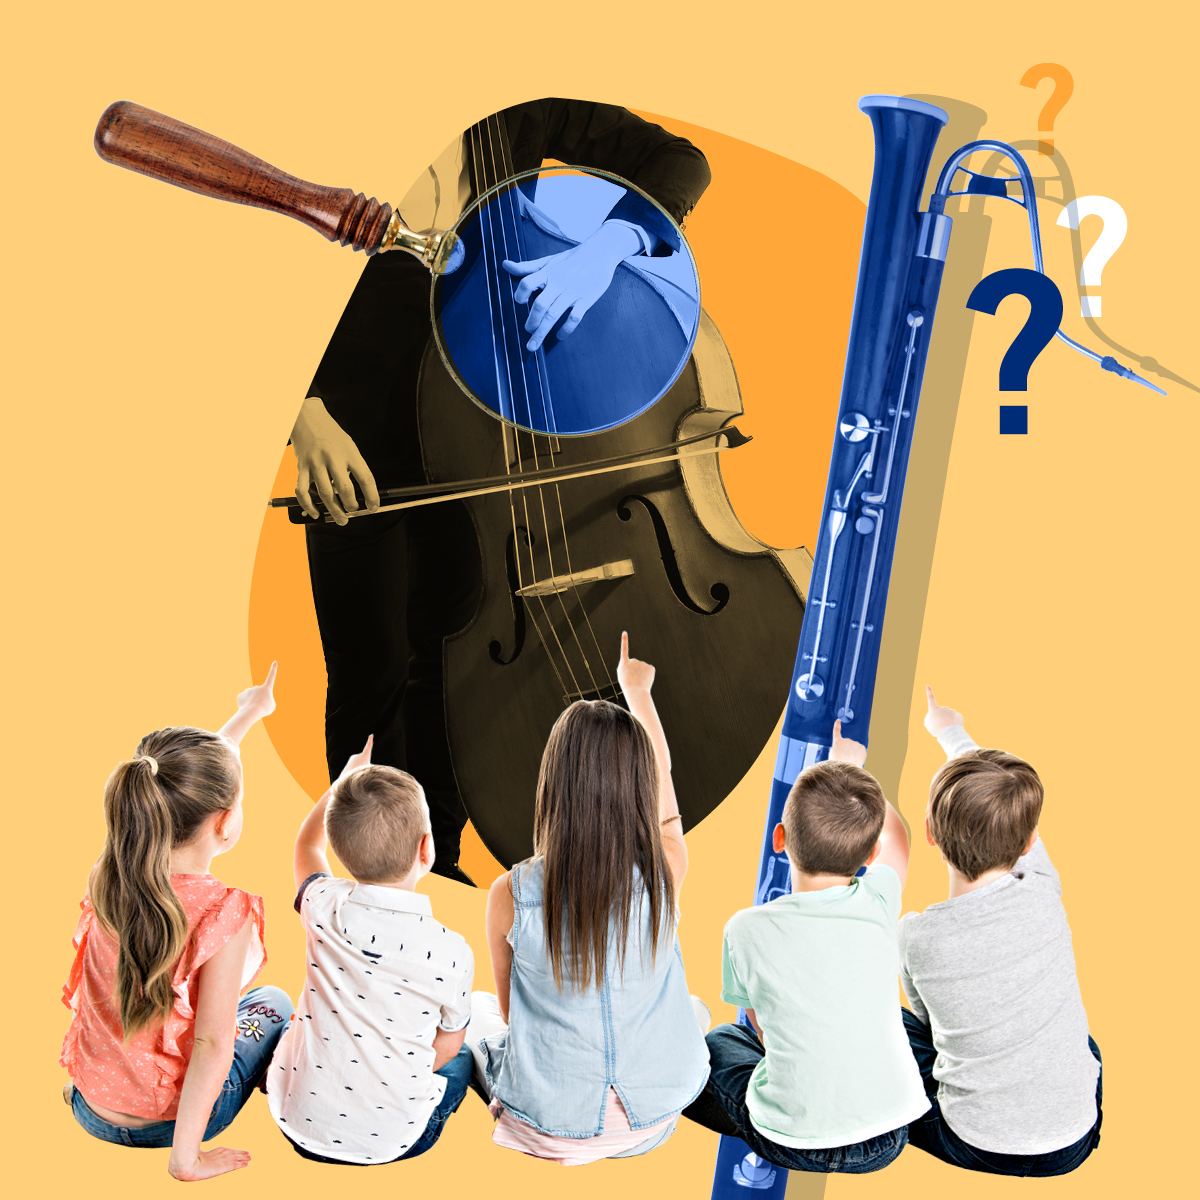 HAYDN_2021_EDUCATION_Sito_DetectiveMusicale_1200x1200